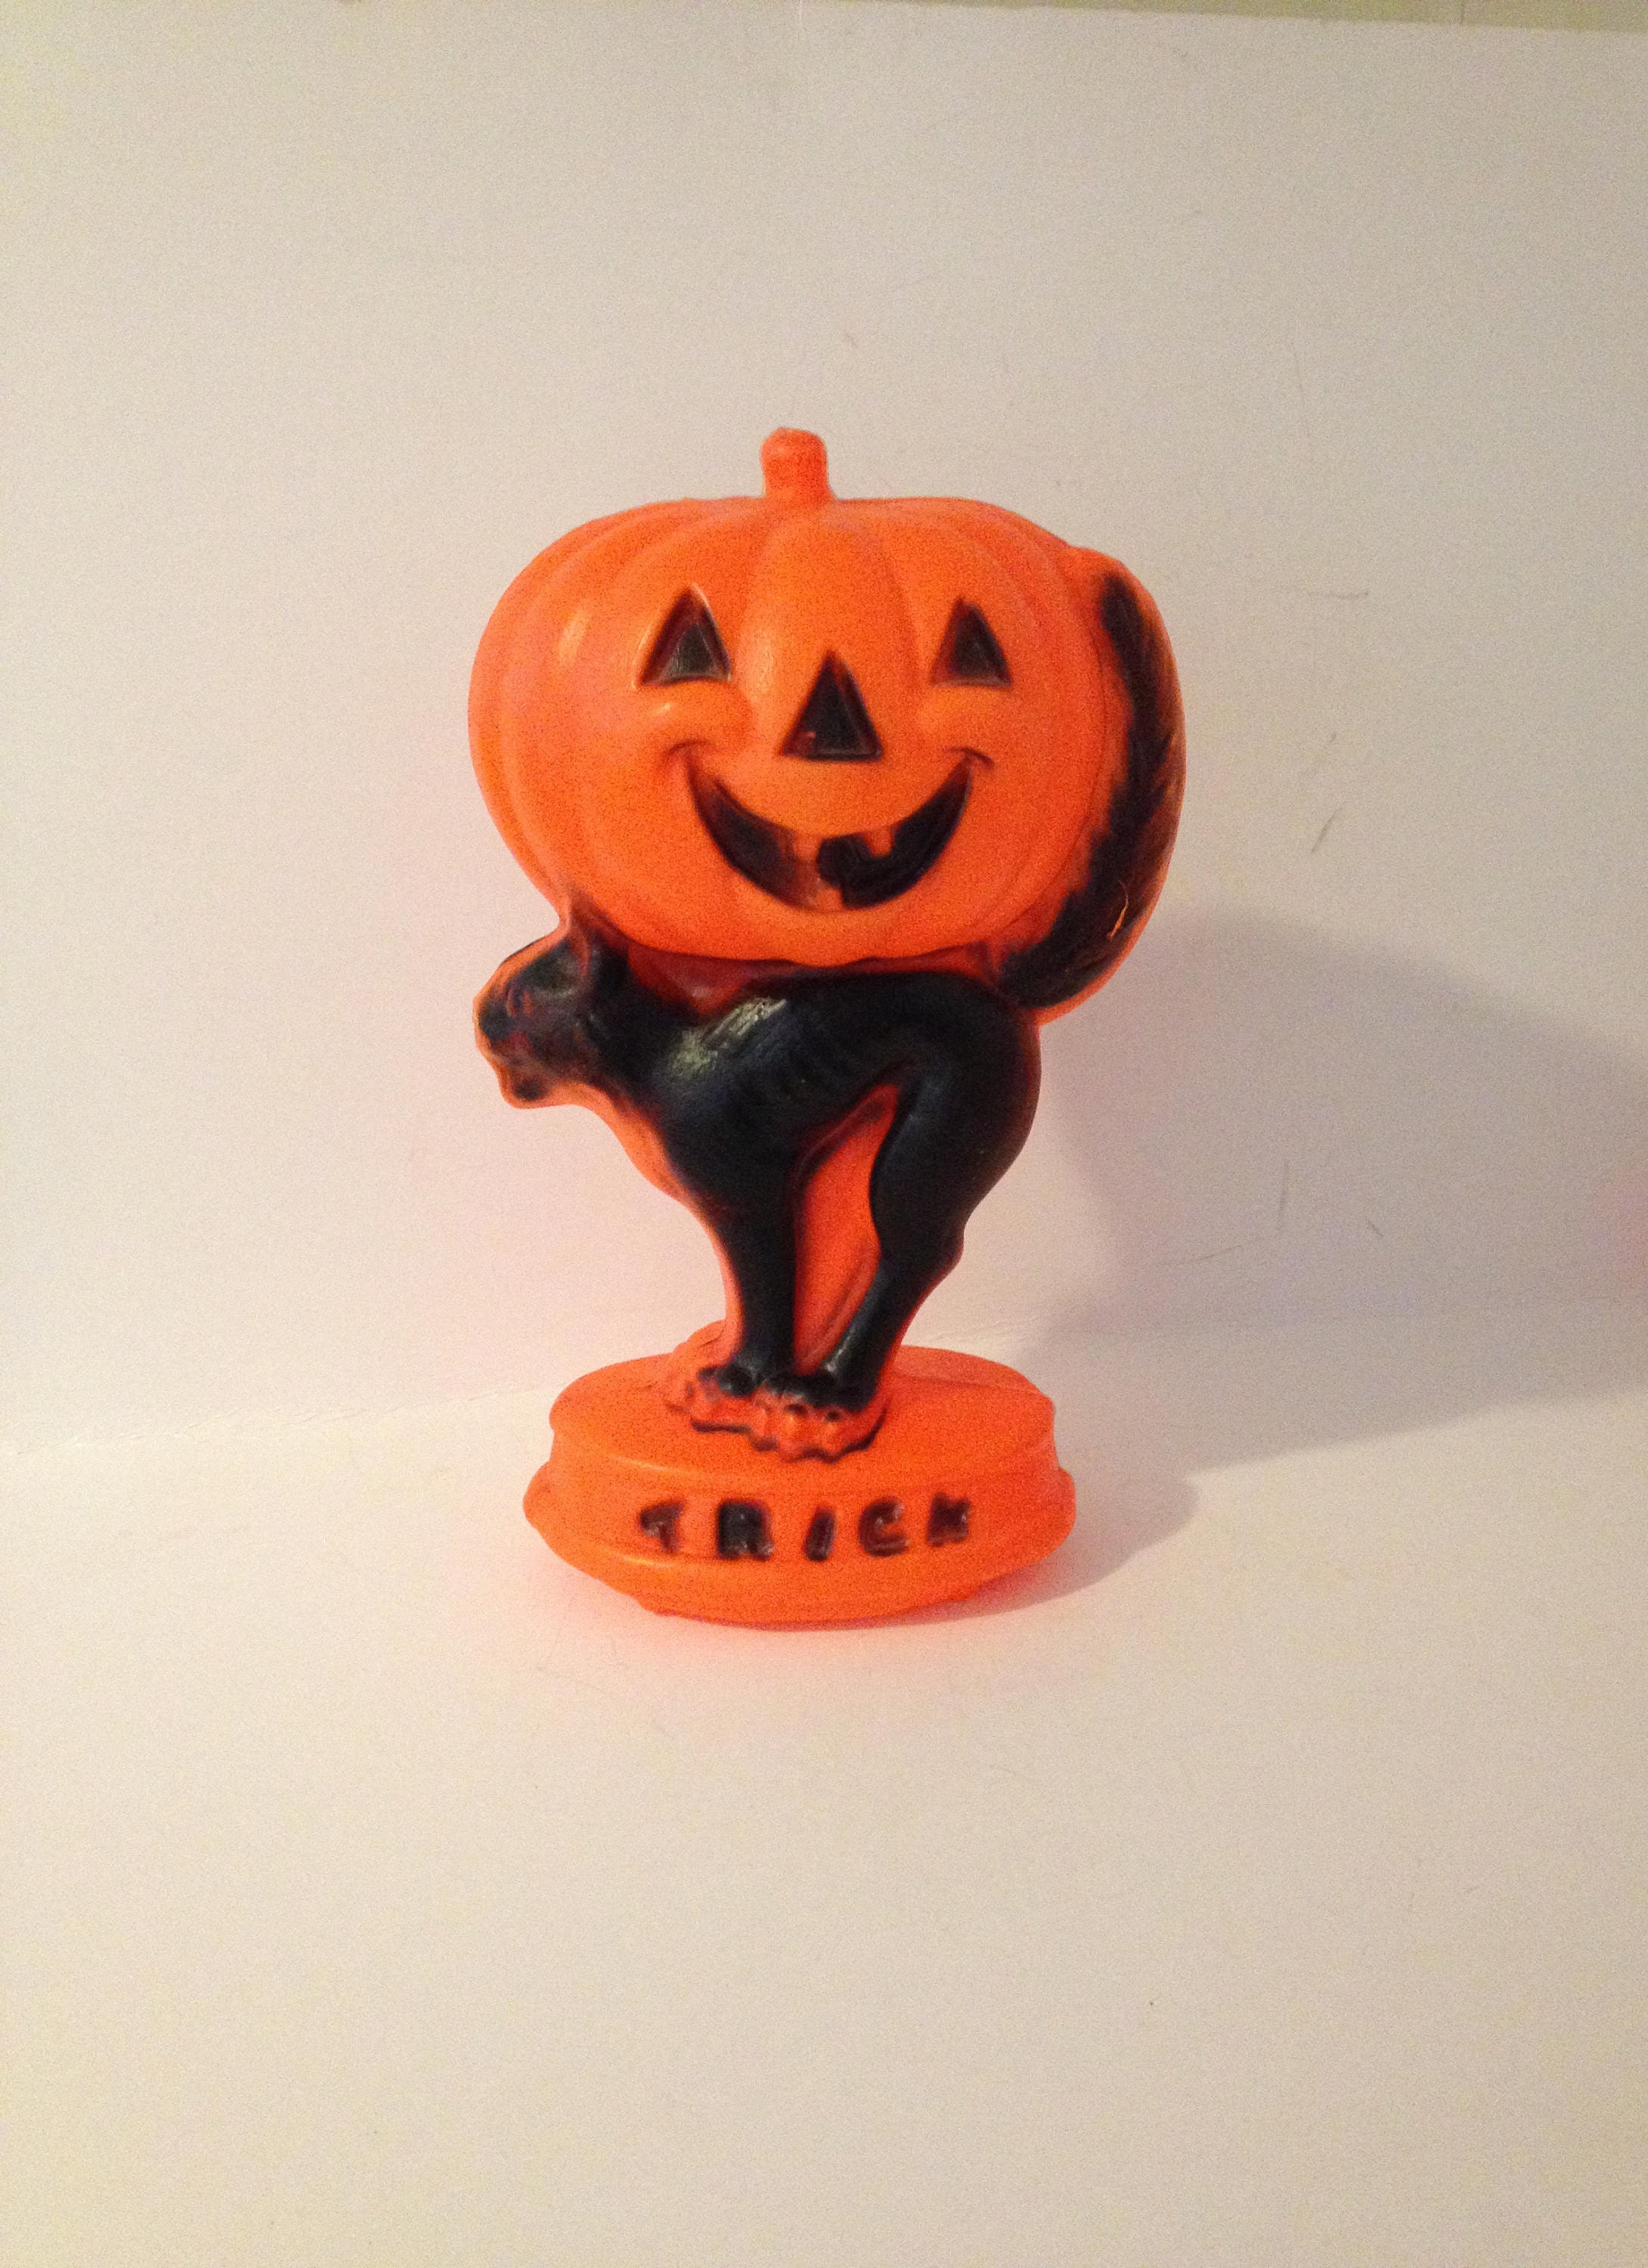 vintage 1985 retro empire plastic halloween pumpkin jack o lantern jol black cat trick or treat